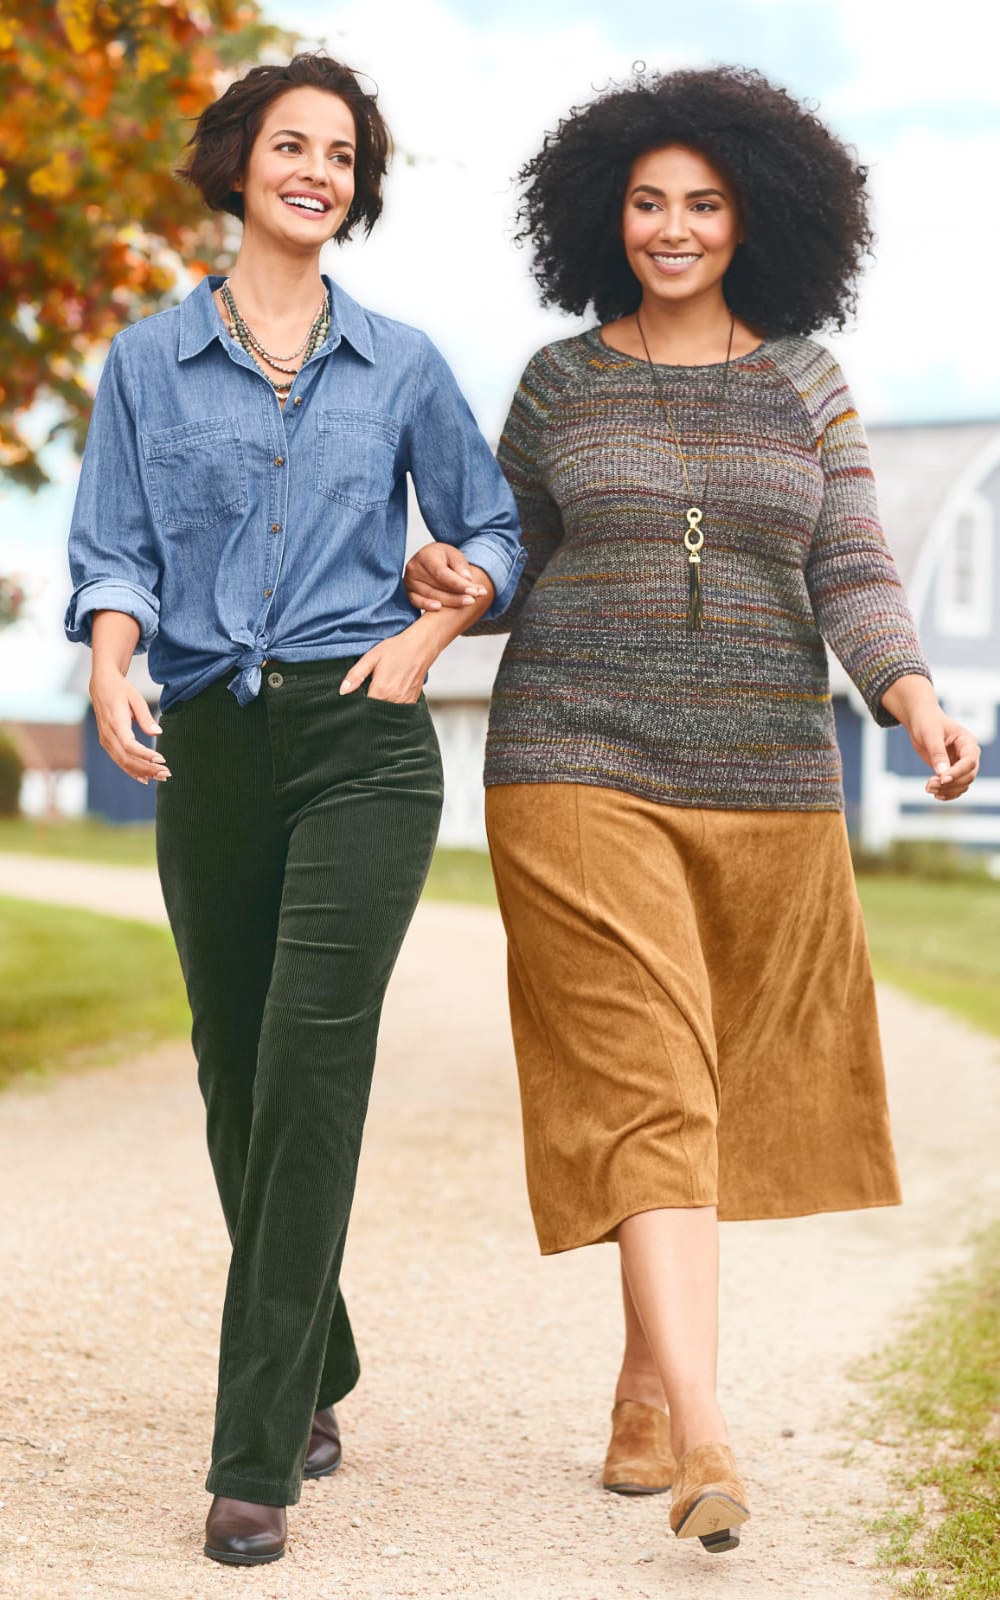 The Rich Corduroy Outfit (combining the Drapey Denim Tunic, the Corduroy Barely Boot Pant, and the Long Faux Suede Metal Circles Pendant Necklace) and the All About Autumn Outfit (combining the Raglan Sleeve Space Dye Yarn Pullover, the Corduroy Boot Skirt, the Long Painted Metal Tassel Necklace, and the Twisted Hoop Earring).